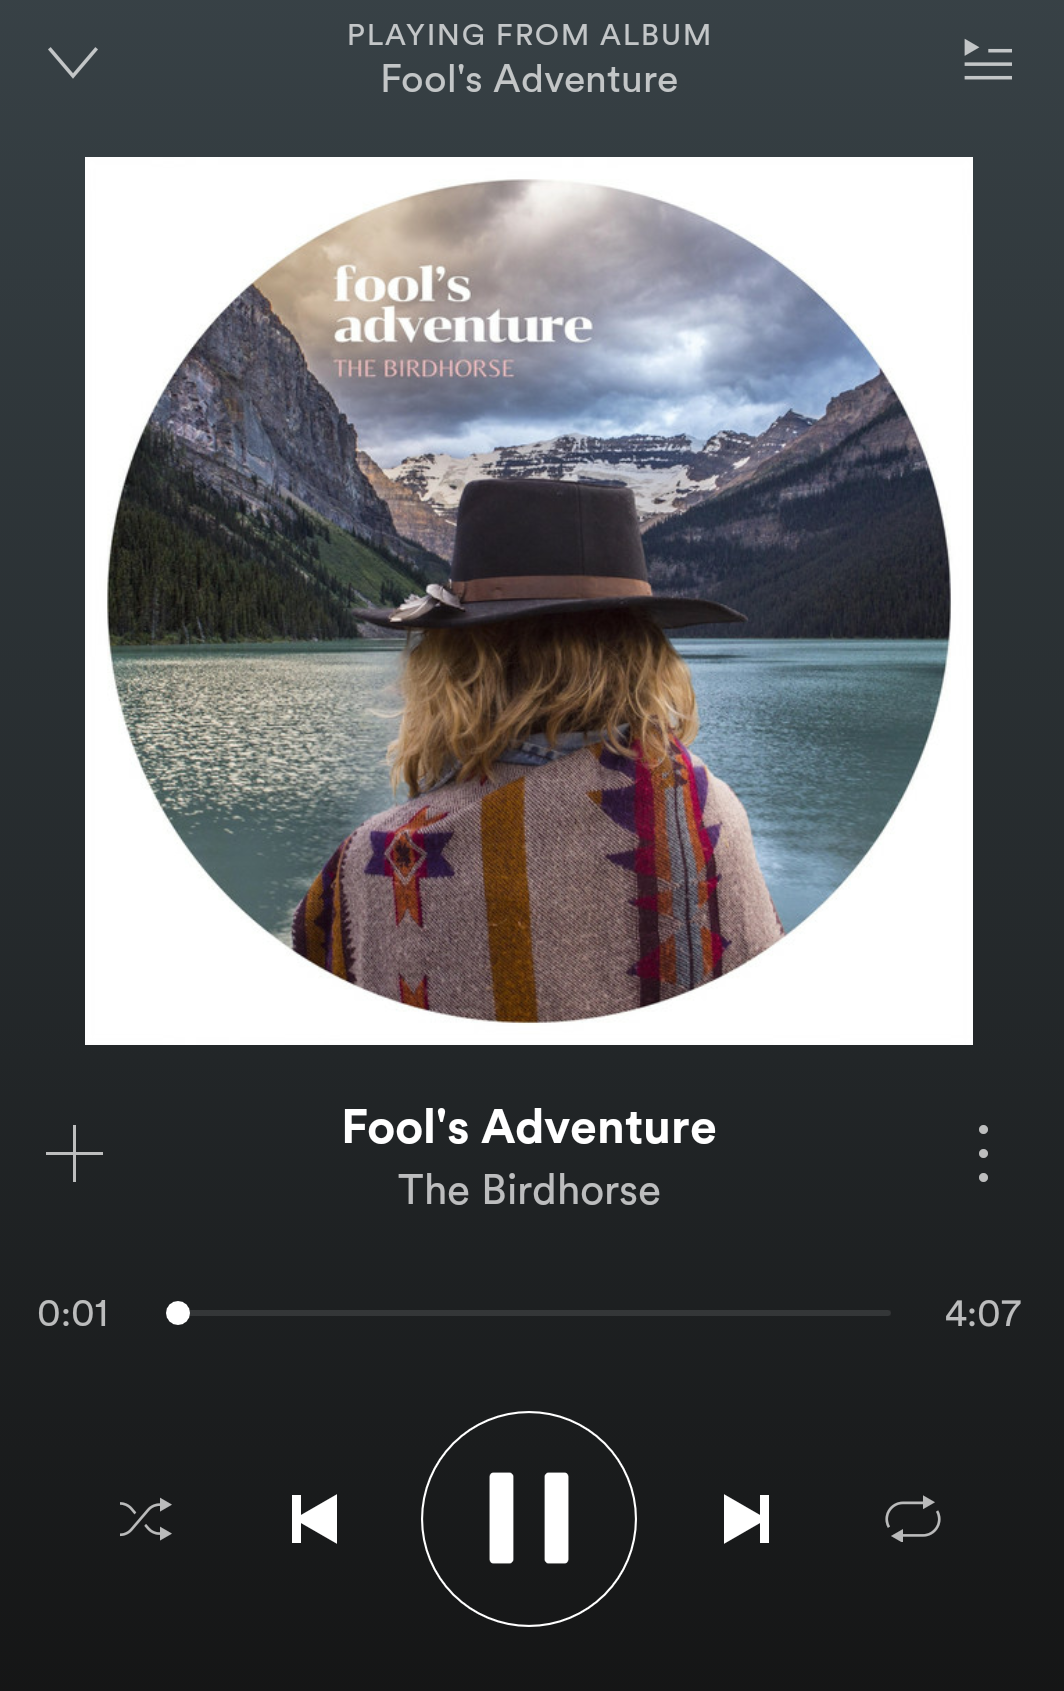 Click to Listen to fool's Adventure on Spotify